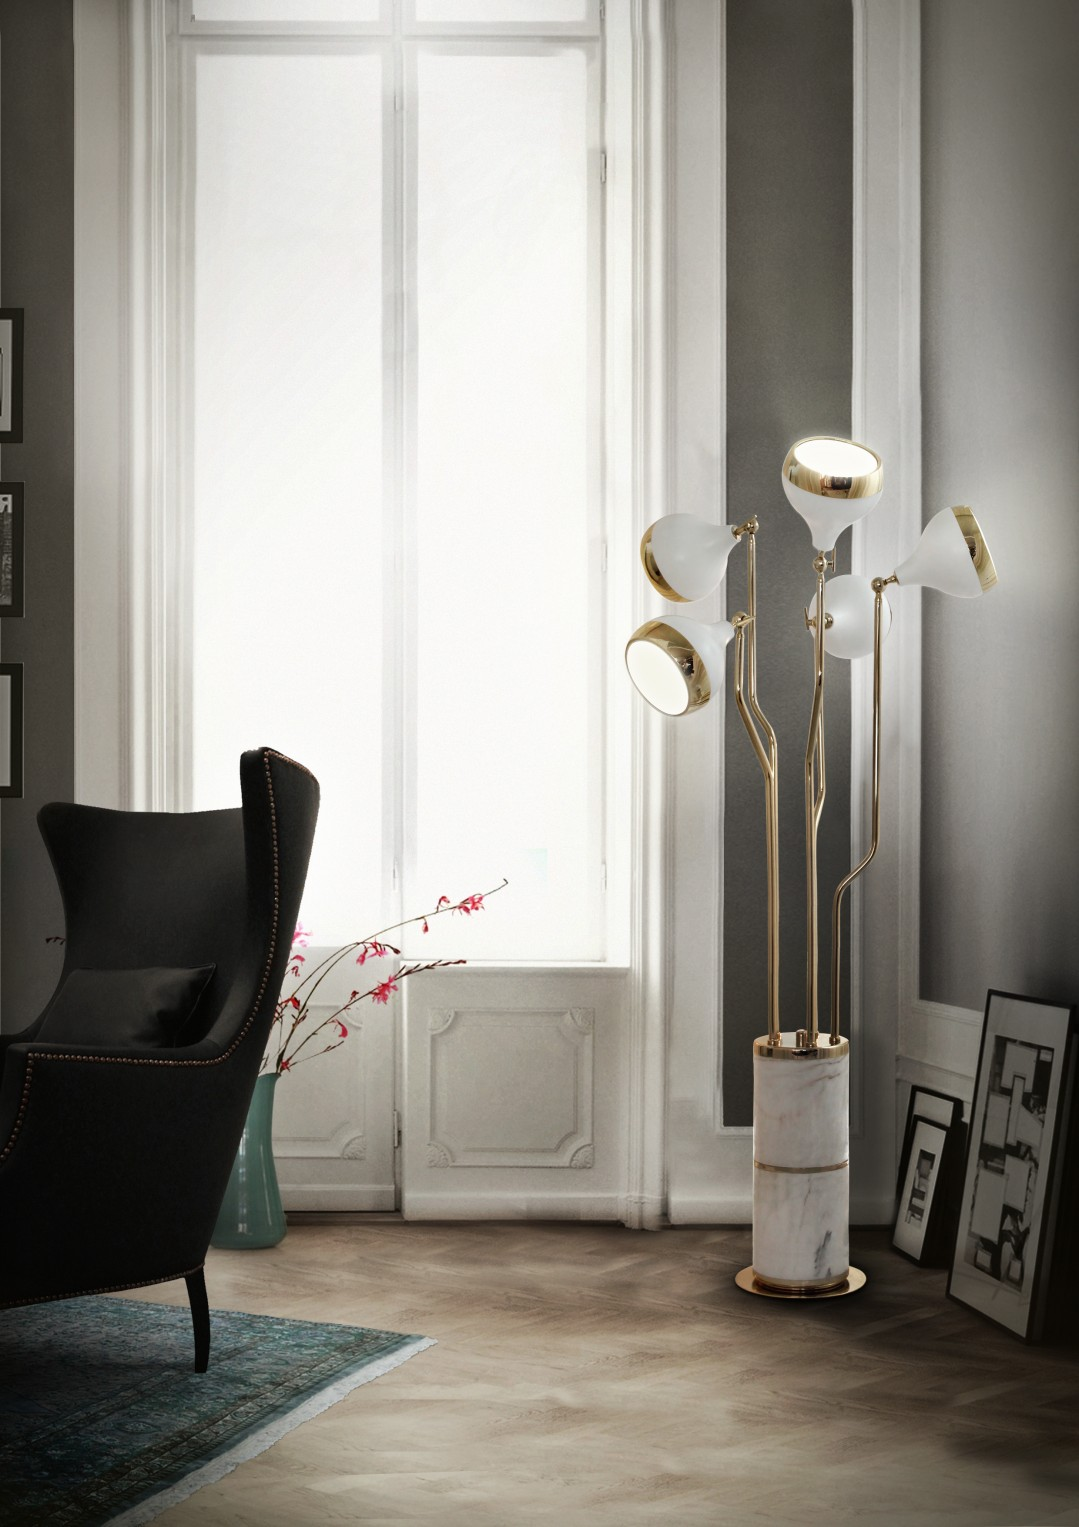 hanna floor lamp An In-Depth Look At Hanna Floor Lamp For Your Living Room Décor! An In Depth Look At Hanna Floor Lamp For Your Living Room D  cor 6